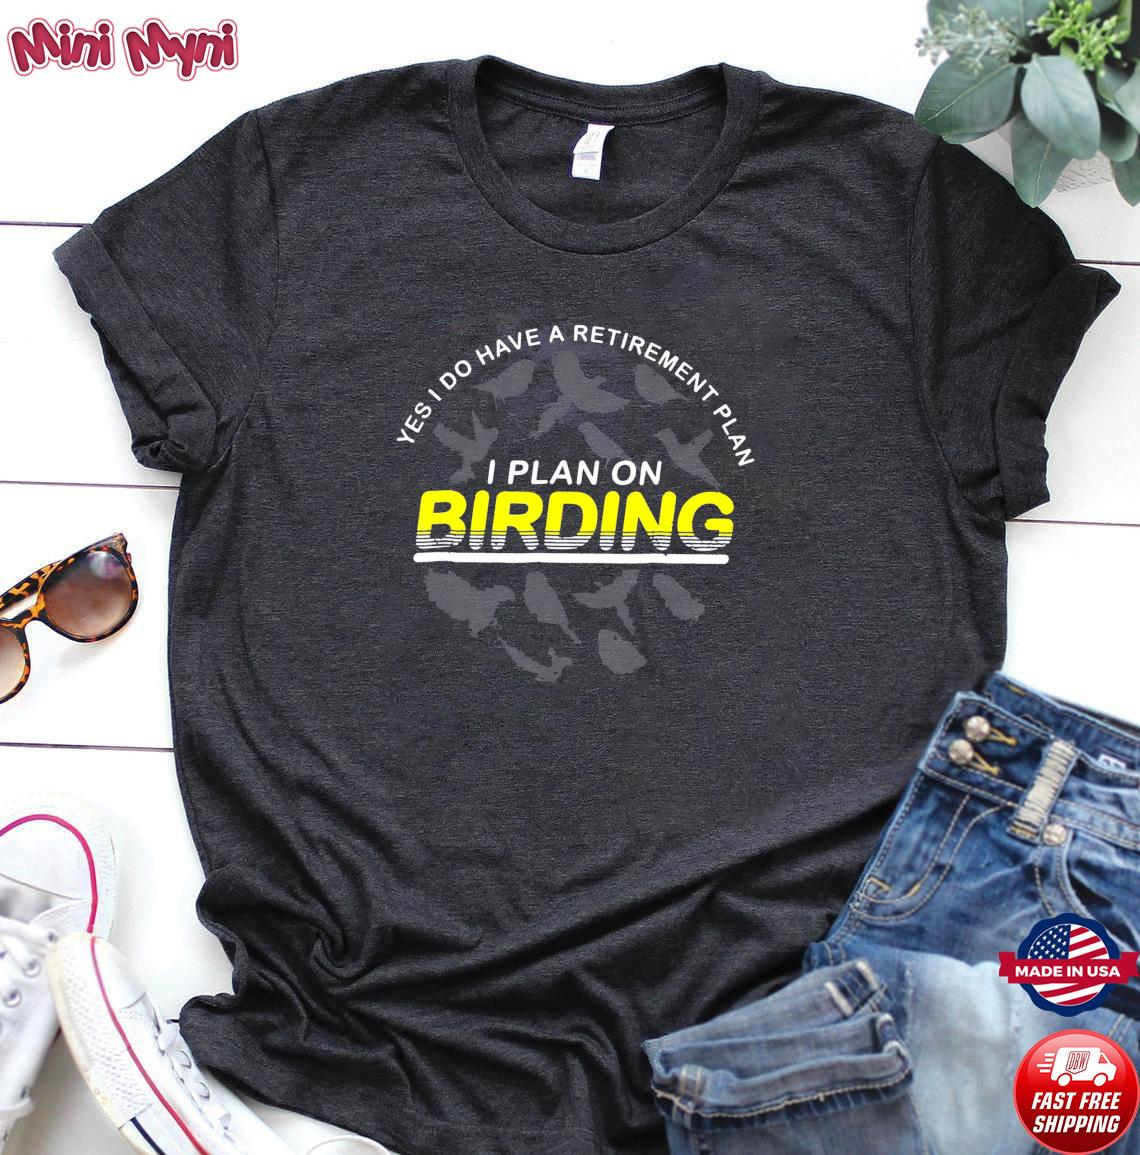 Yes I Do Have A Retirement Plan I Plan On Birding Shirt